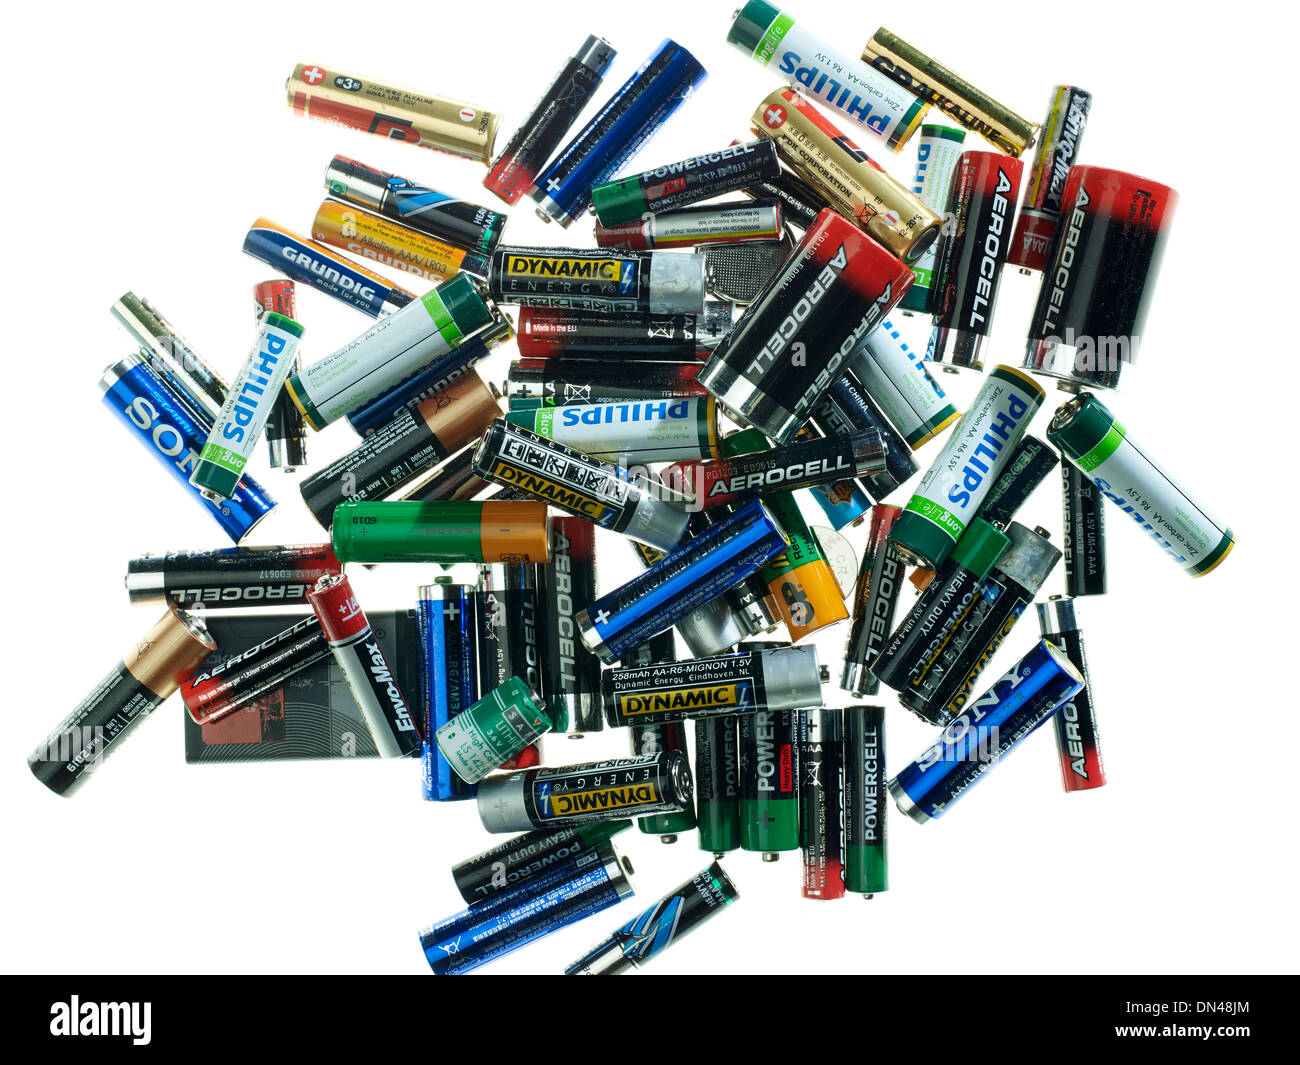 Empty batteries together - Stock Image